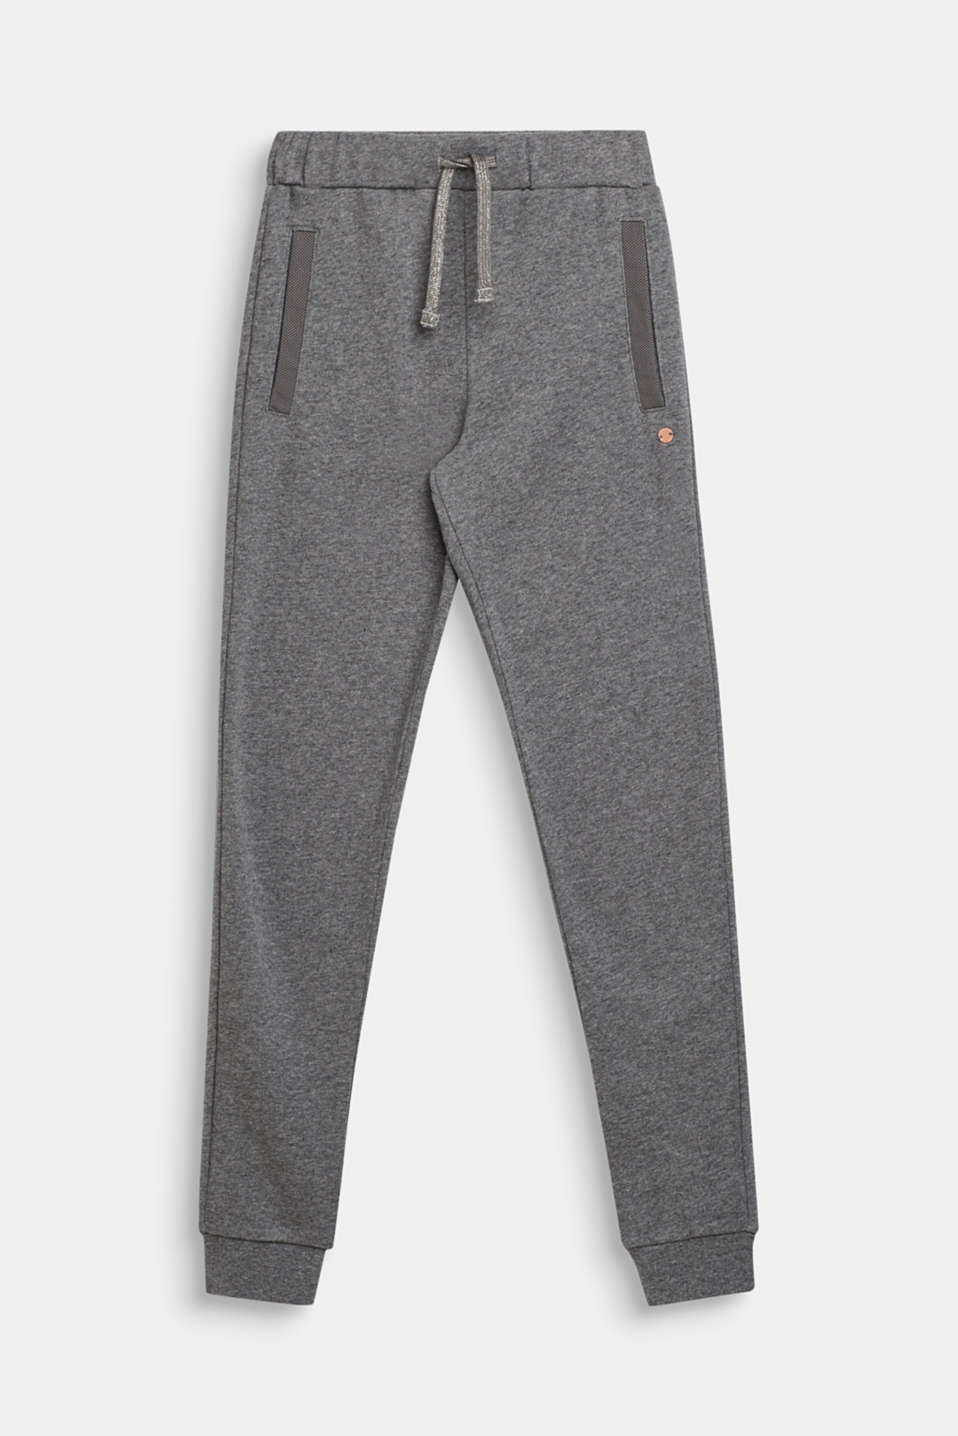 Melange sweatshirt fabric trousers made of 100% cotton, LCDARK HEATHER G, detail image number 0